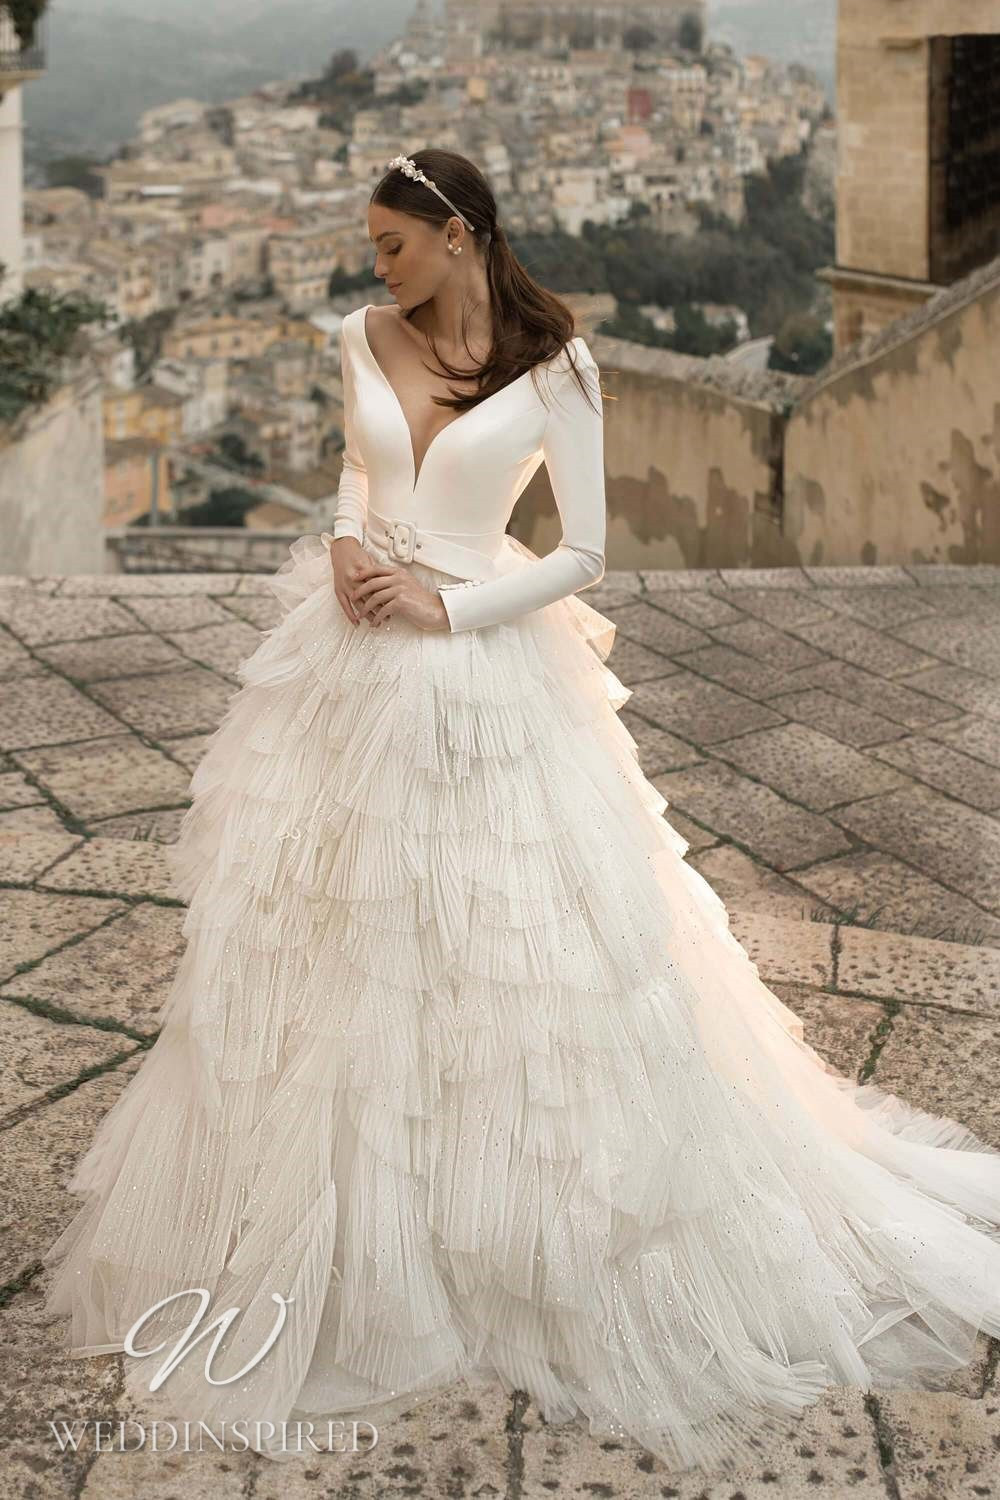 A Lussano 2021 satin and tulle A-line wedding dress with long sleeves